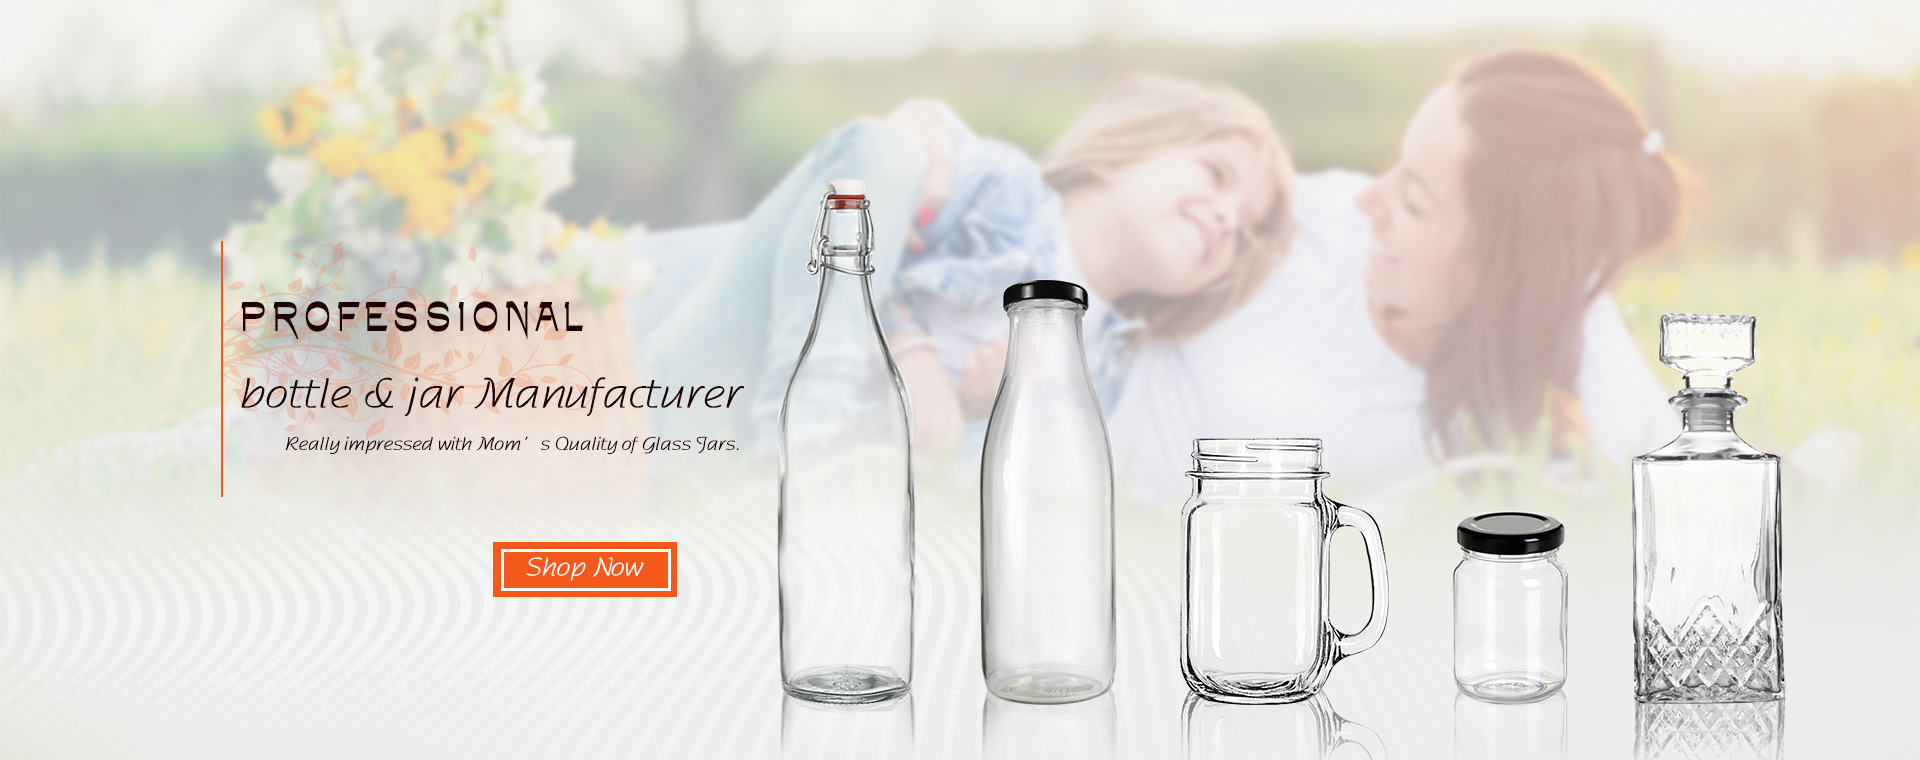 bottle & jar Manufacture